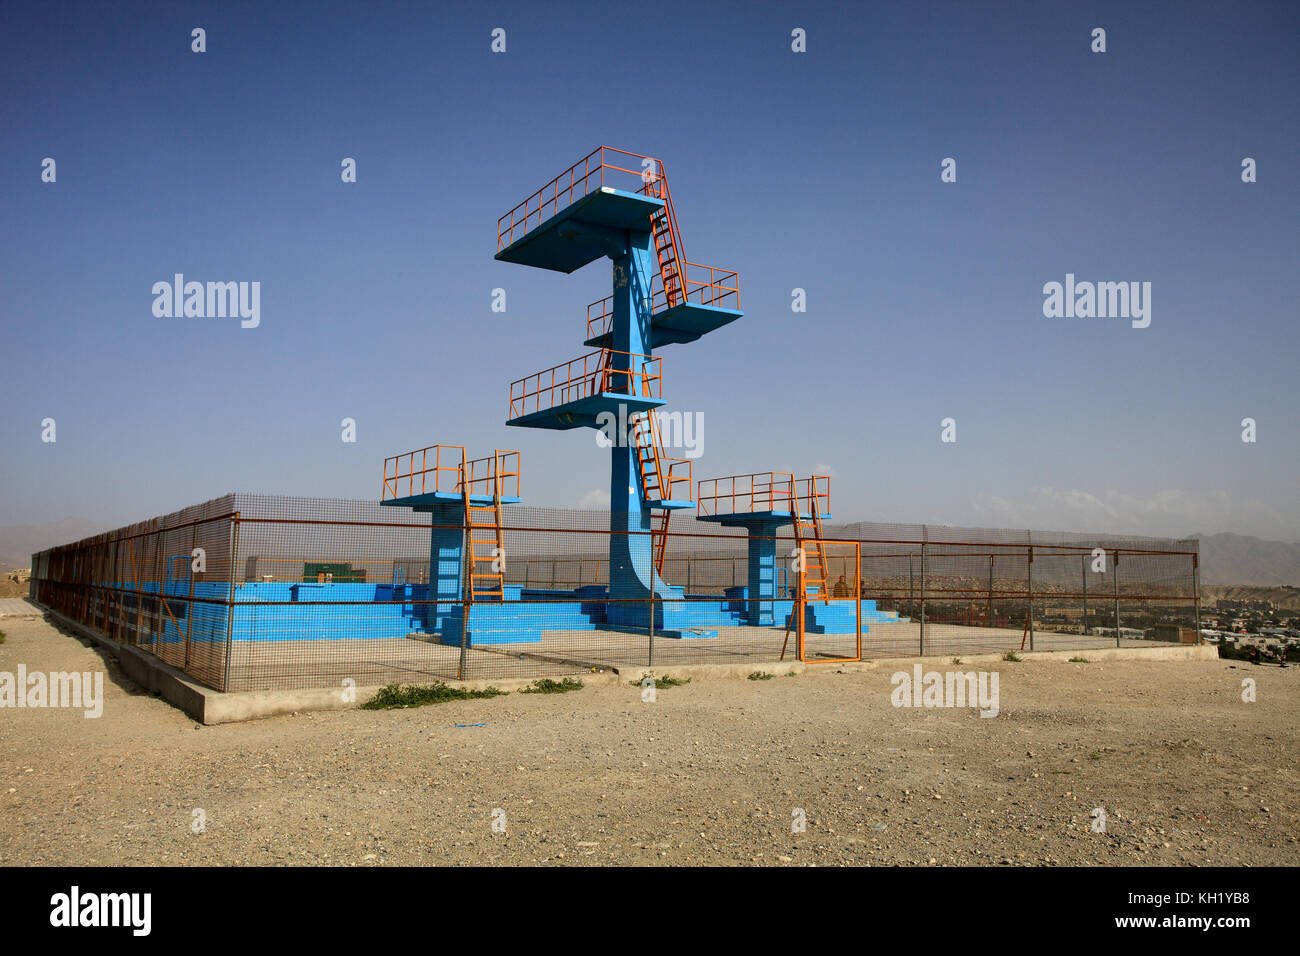 Diving board olympics stock photos diving board olympics - How many olympic sized swimming pools in uk ...